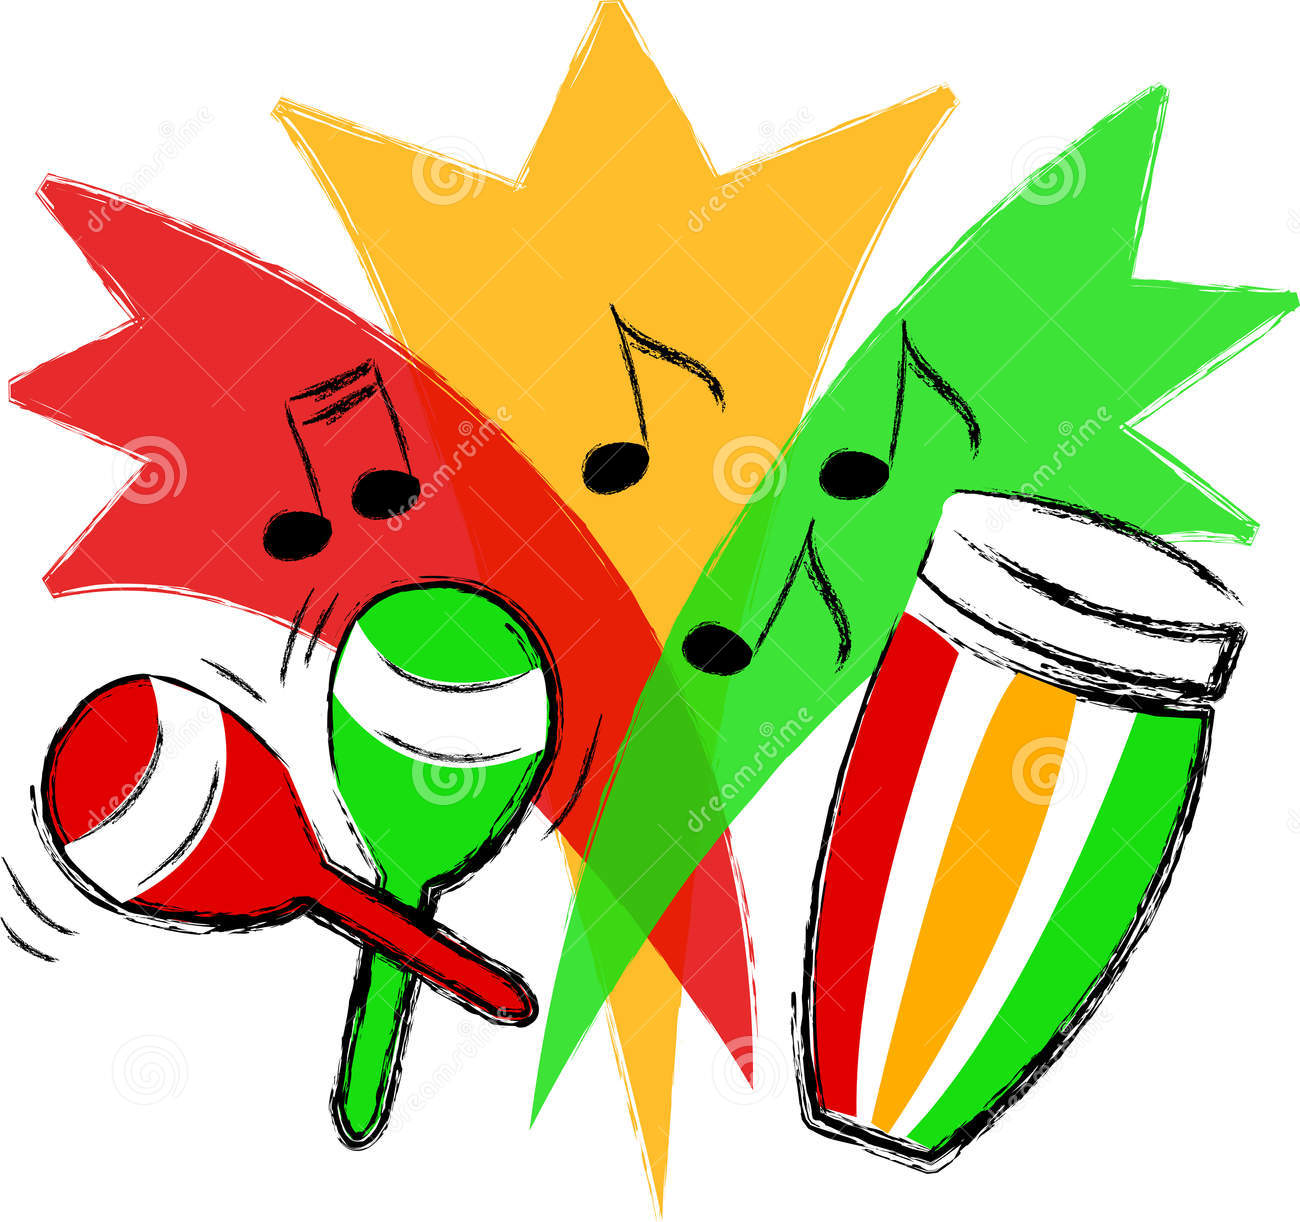 Maracas Clipart A Conga Drum And Maracas